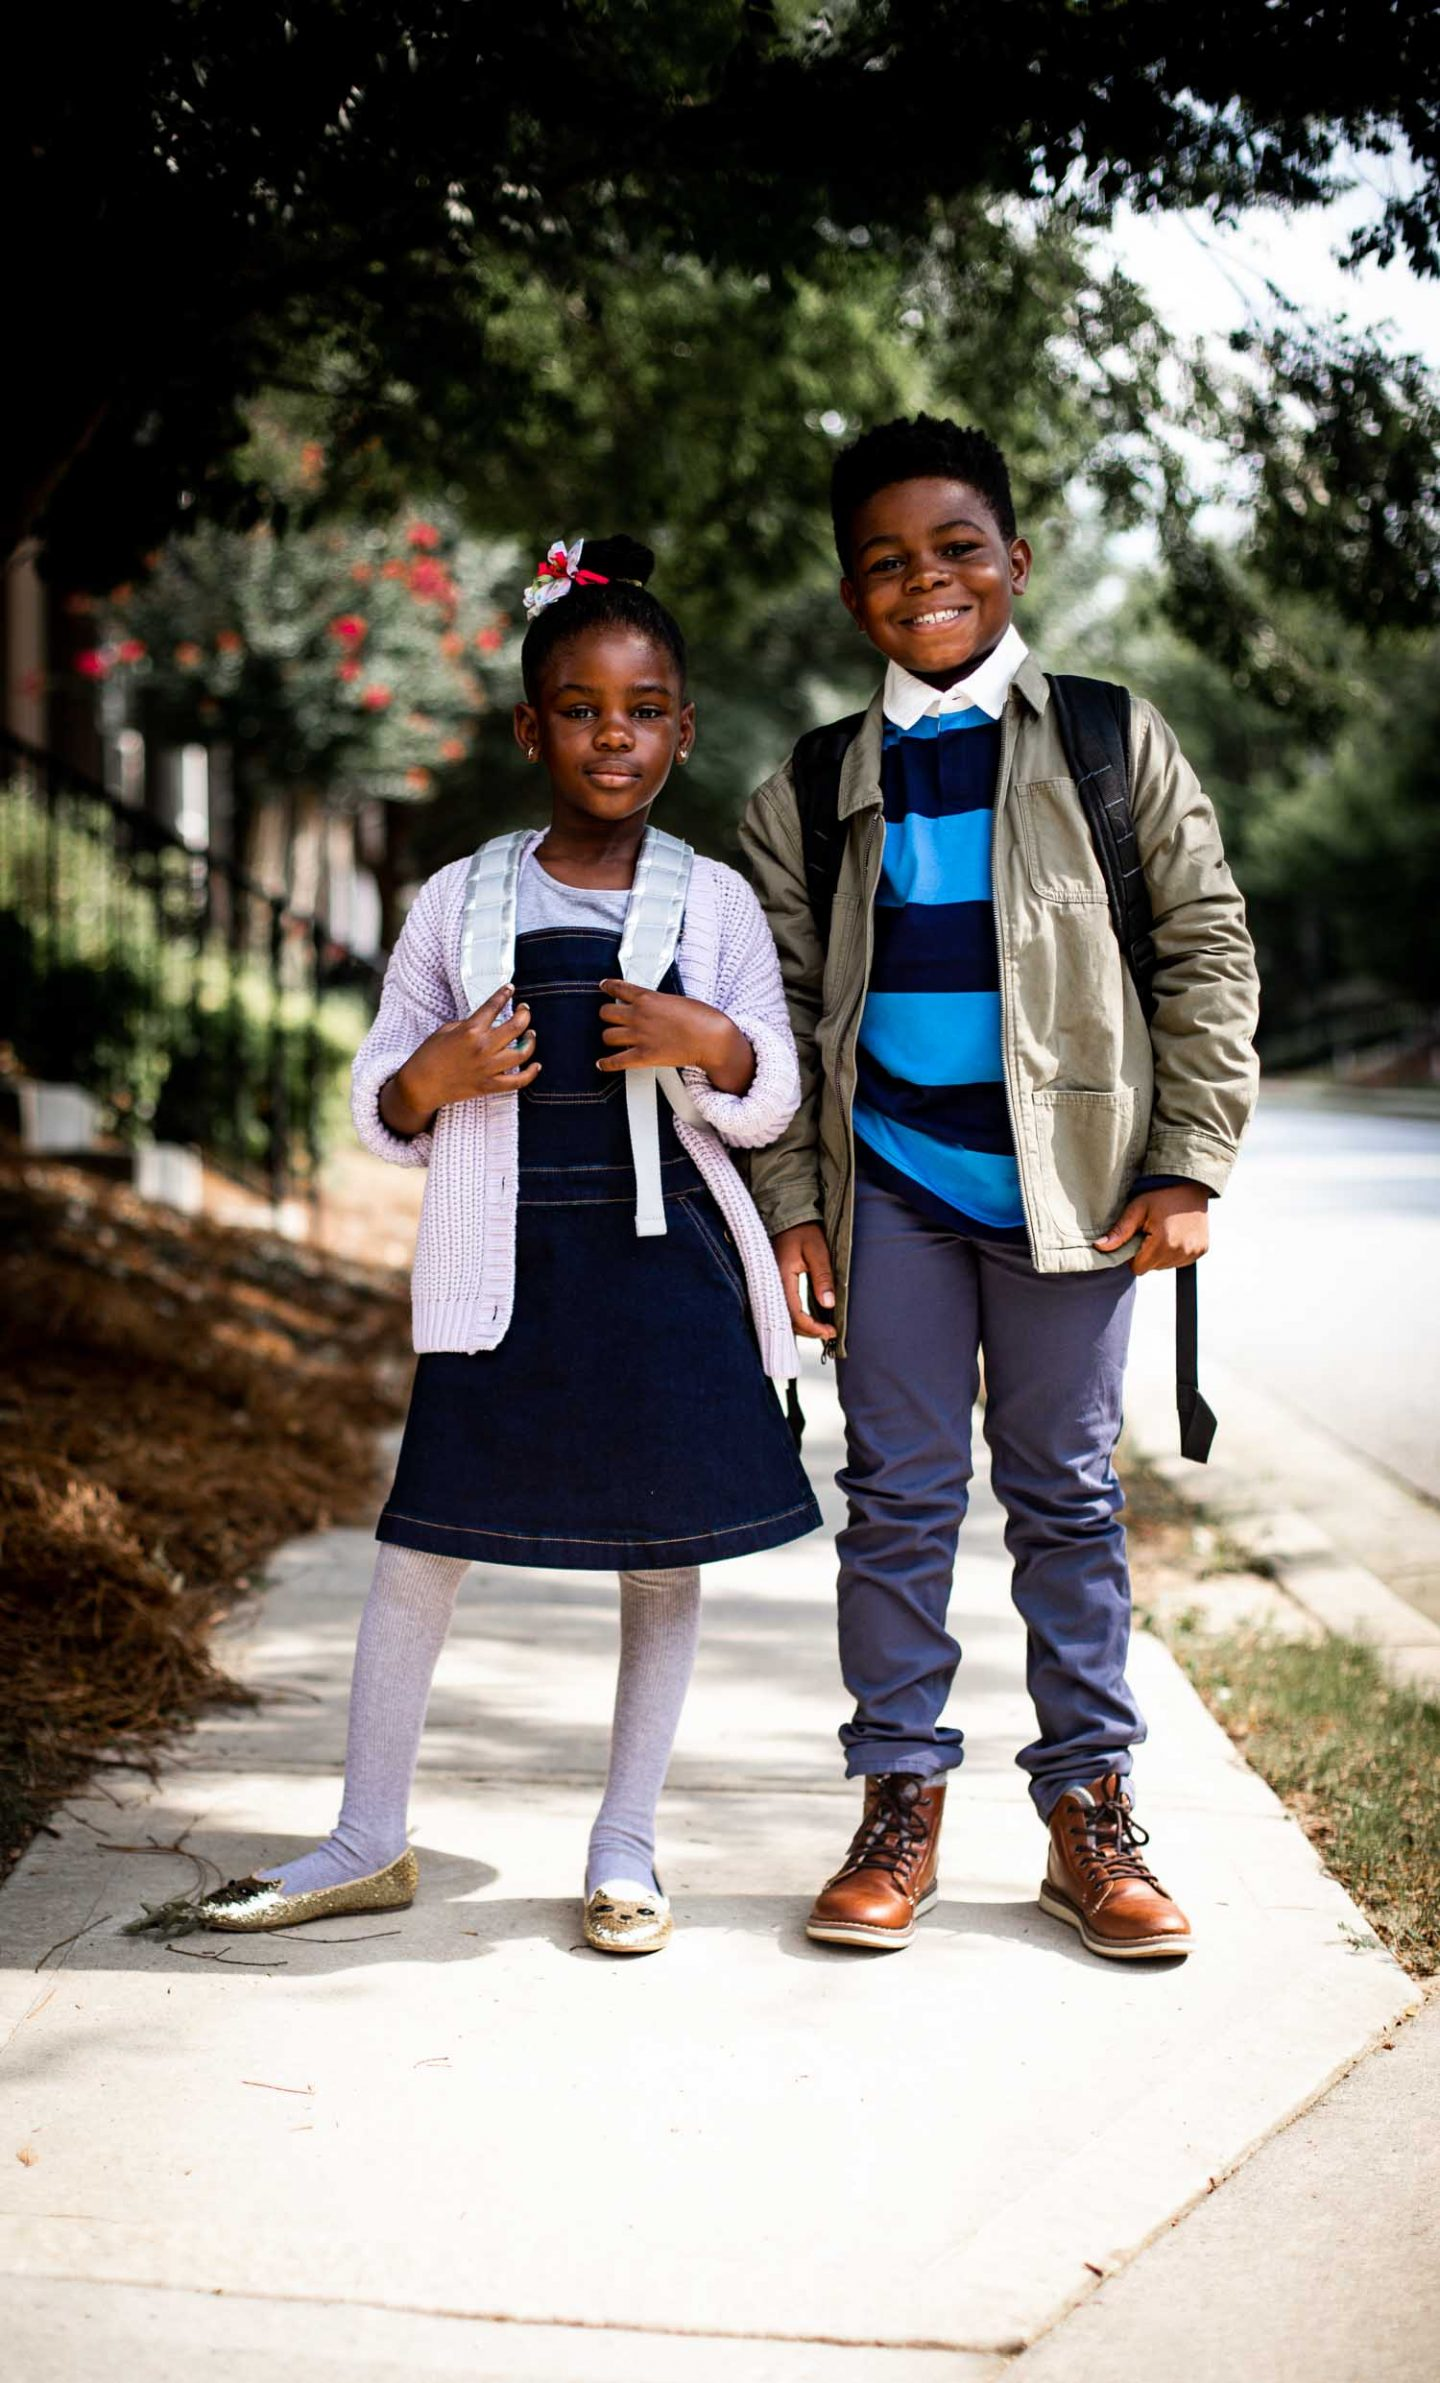 Atlanta fashion and lifestyle blogger Monica Awe-Etuk styles her kids in organic kids clothing from Hanna Andersson